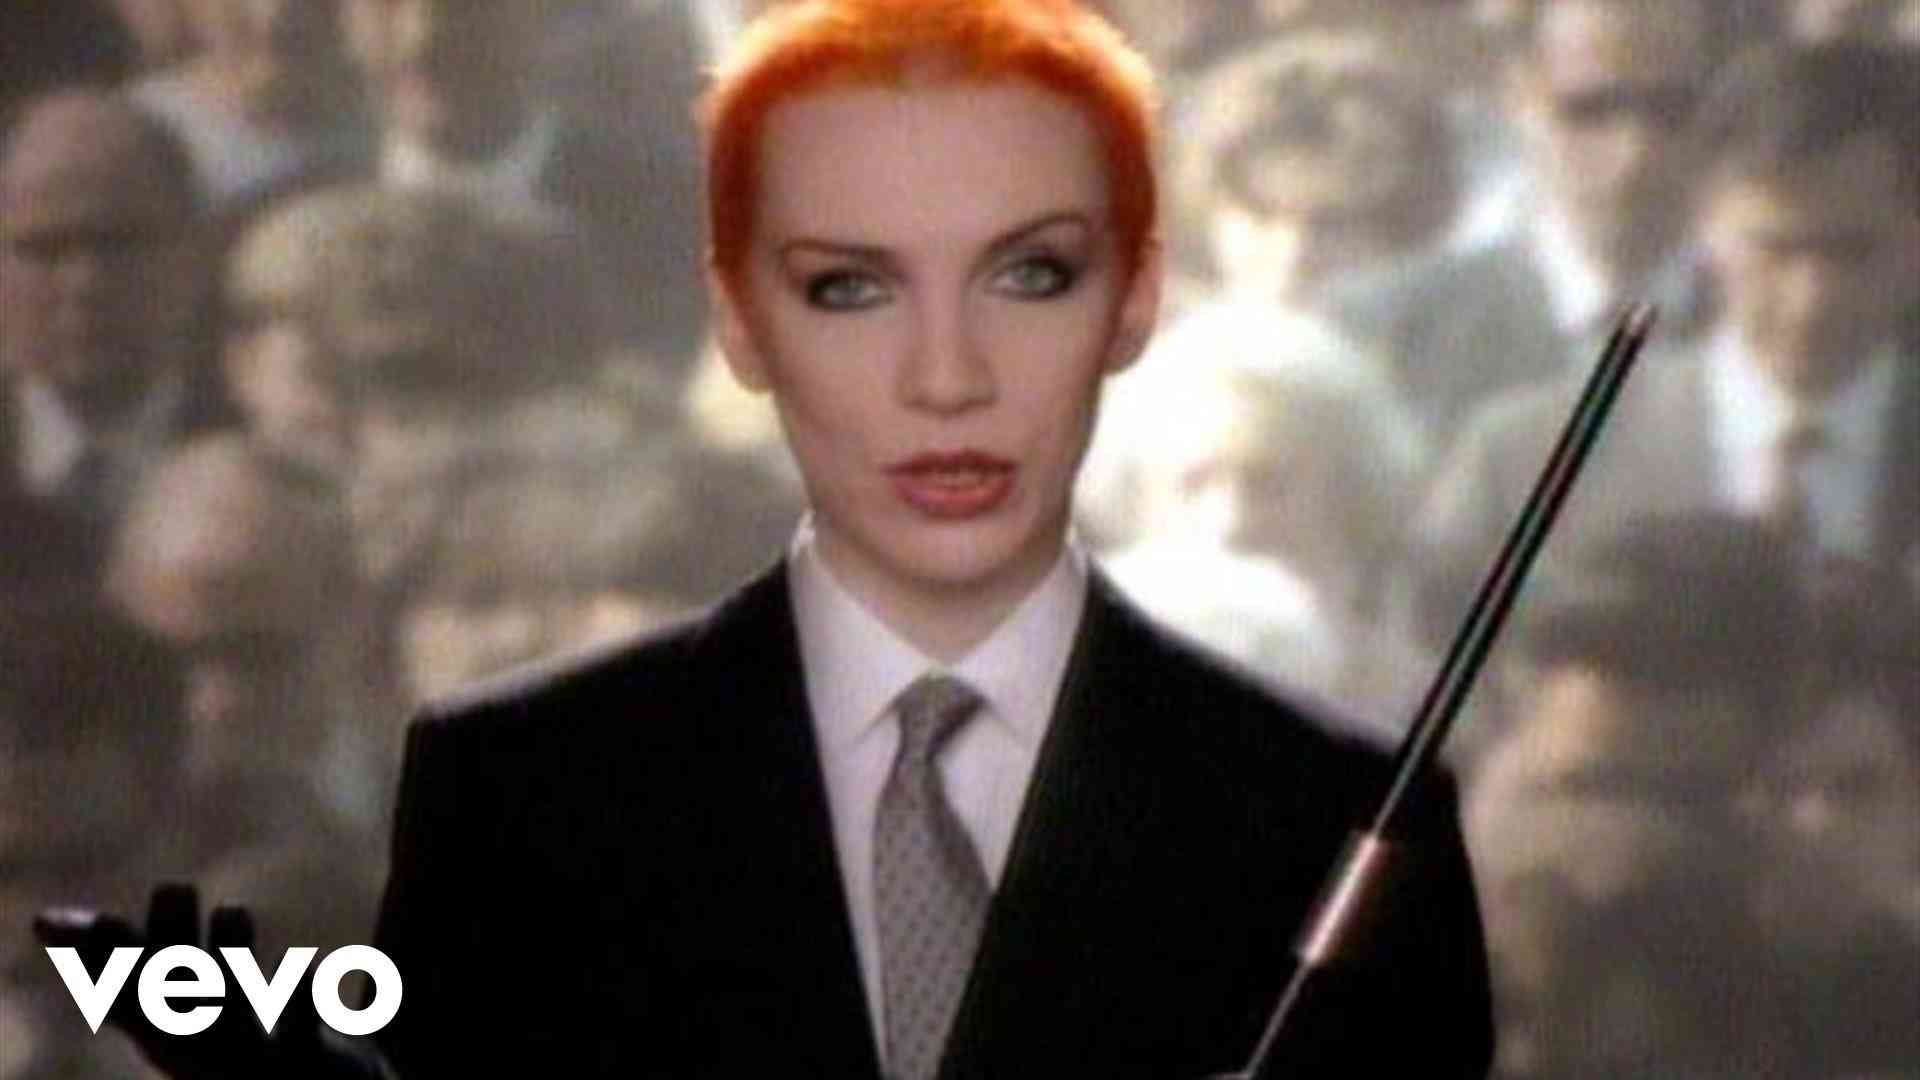 Eurythmics - Sweet Dreams (Are Made Of This) (Video (Remastered)) - YouTube